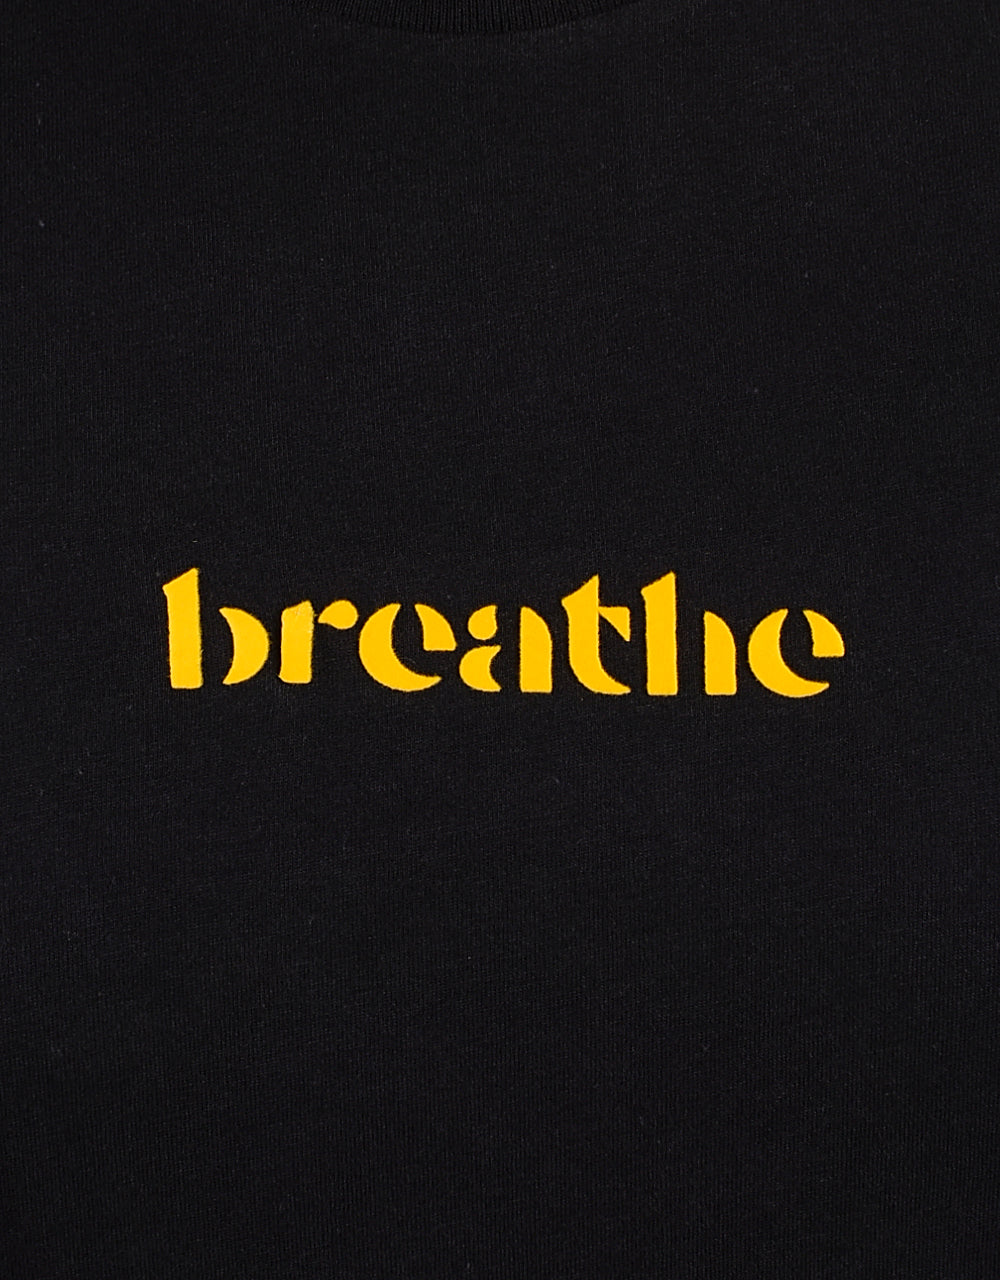 Breathe 1 Graphic Tees